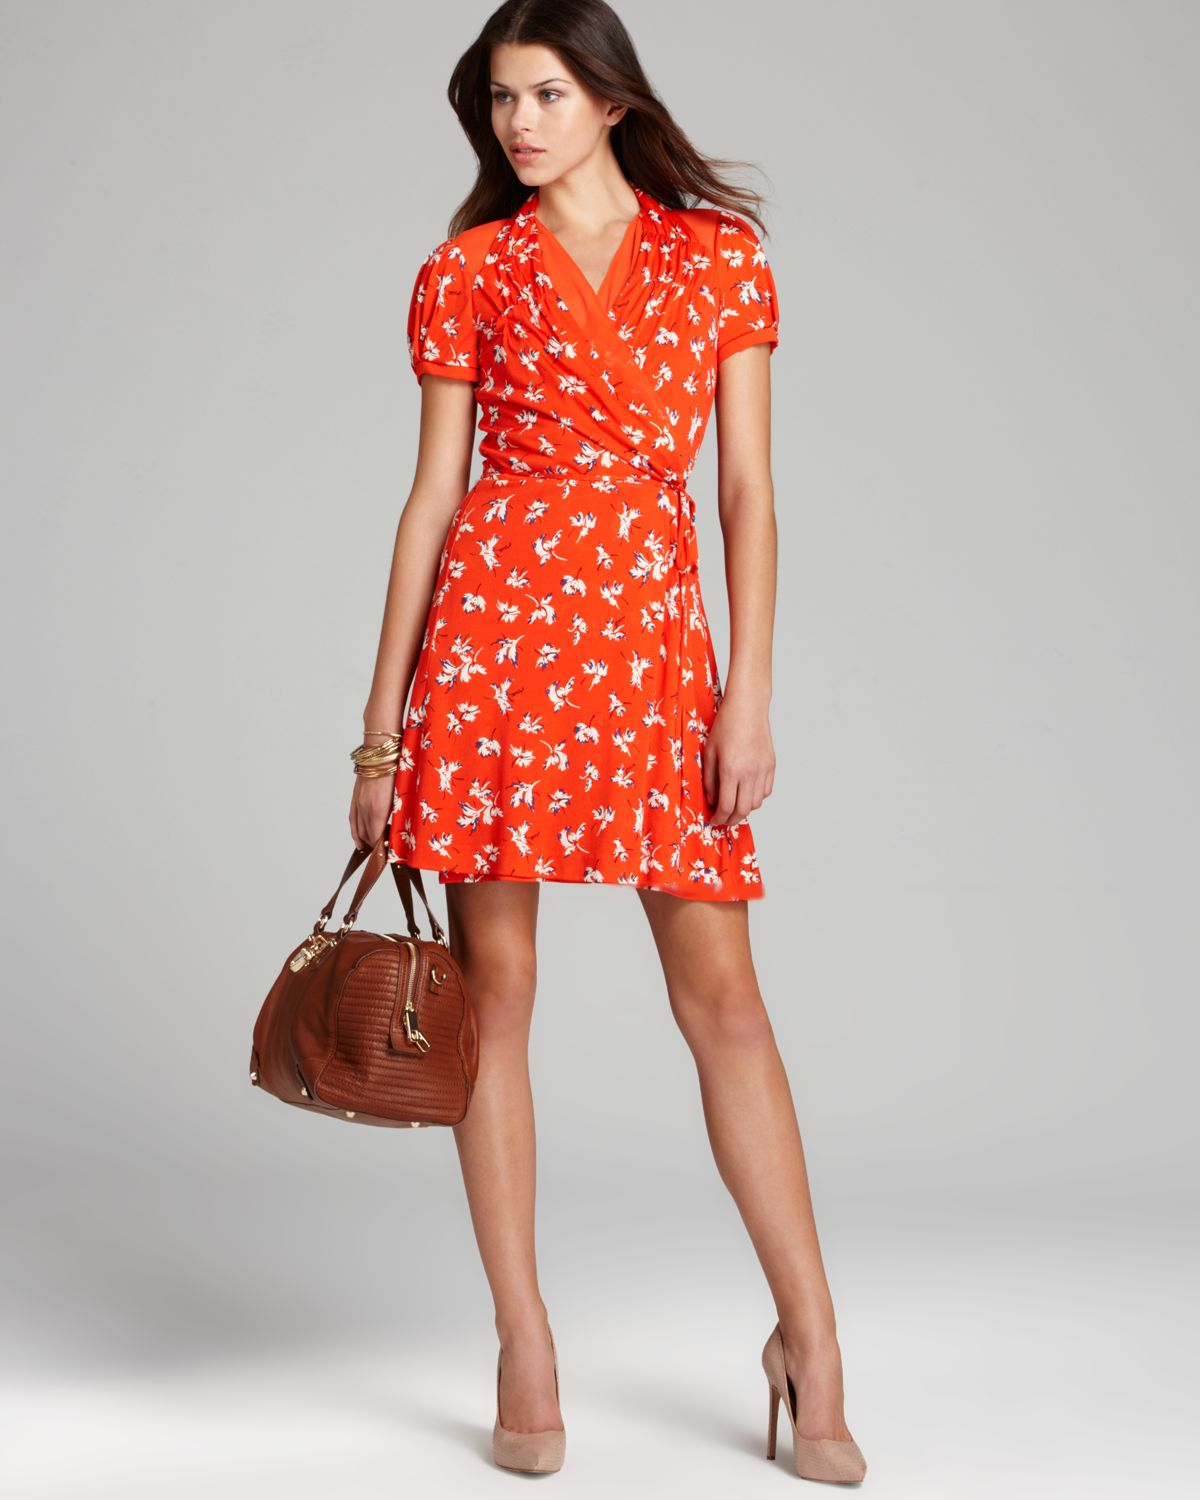 a2461cb52e Juicy Couture Dress Feathered Iris in Orange - Lyst